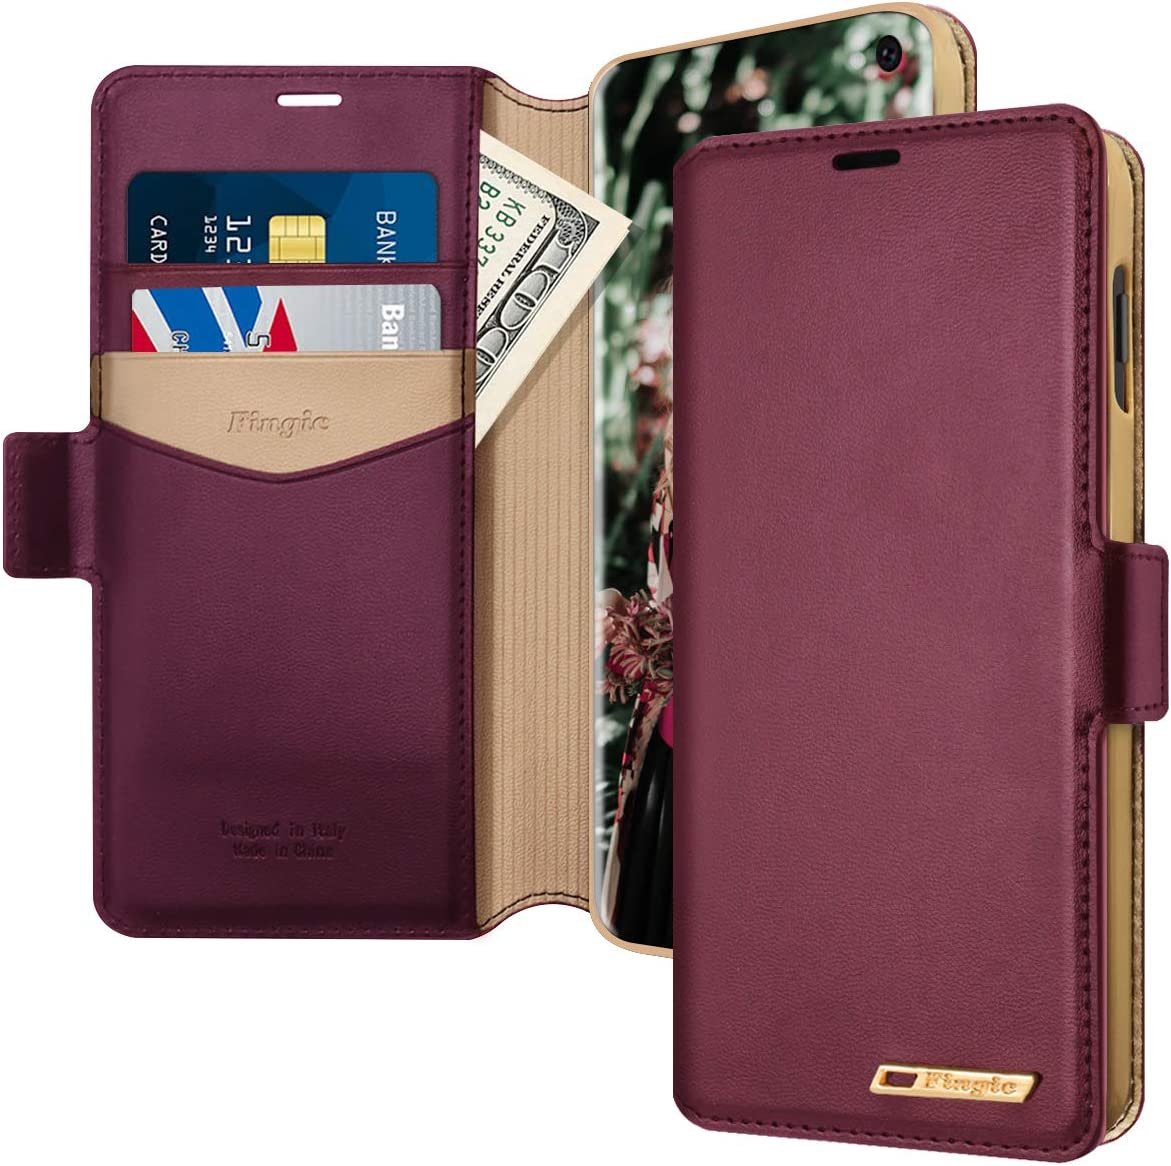 Samsung Galaxy S10E Case, Galaxy S10E Wallet Case, Fingic PU Leather Flip Case with 2 ID & Credit Cards Slots Holder Side Pocket Kickstand Feature Case Cover for Samsung Galaxy S10e 5.8 inch- Wine Red